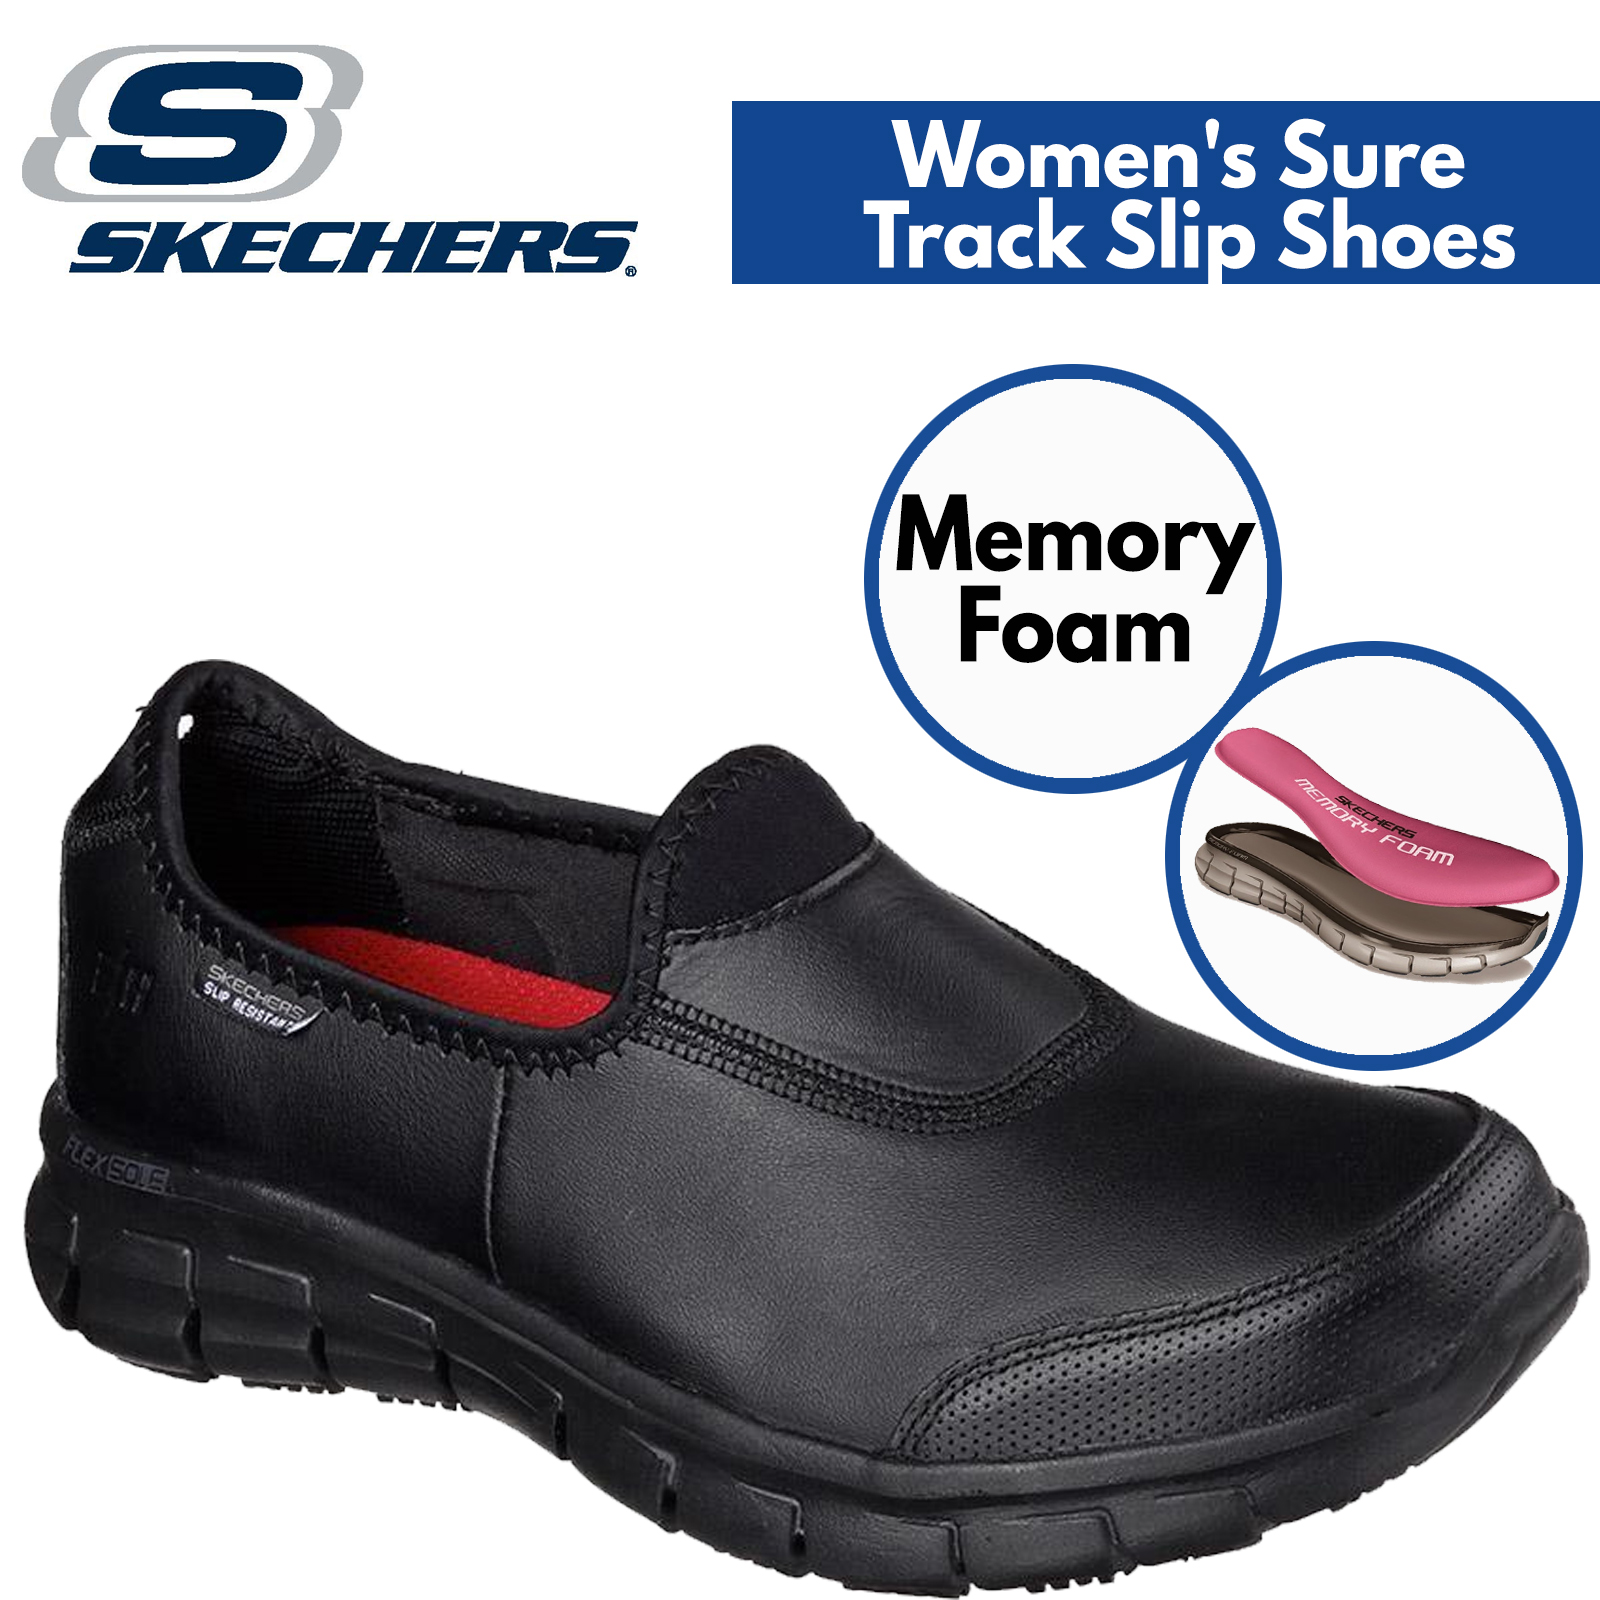 Skechers Women's Sure Track Slip Resistant Leather Work Shoes Memory Foam Black